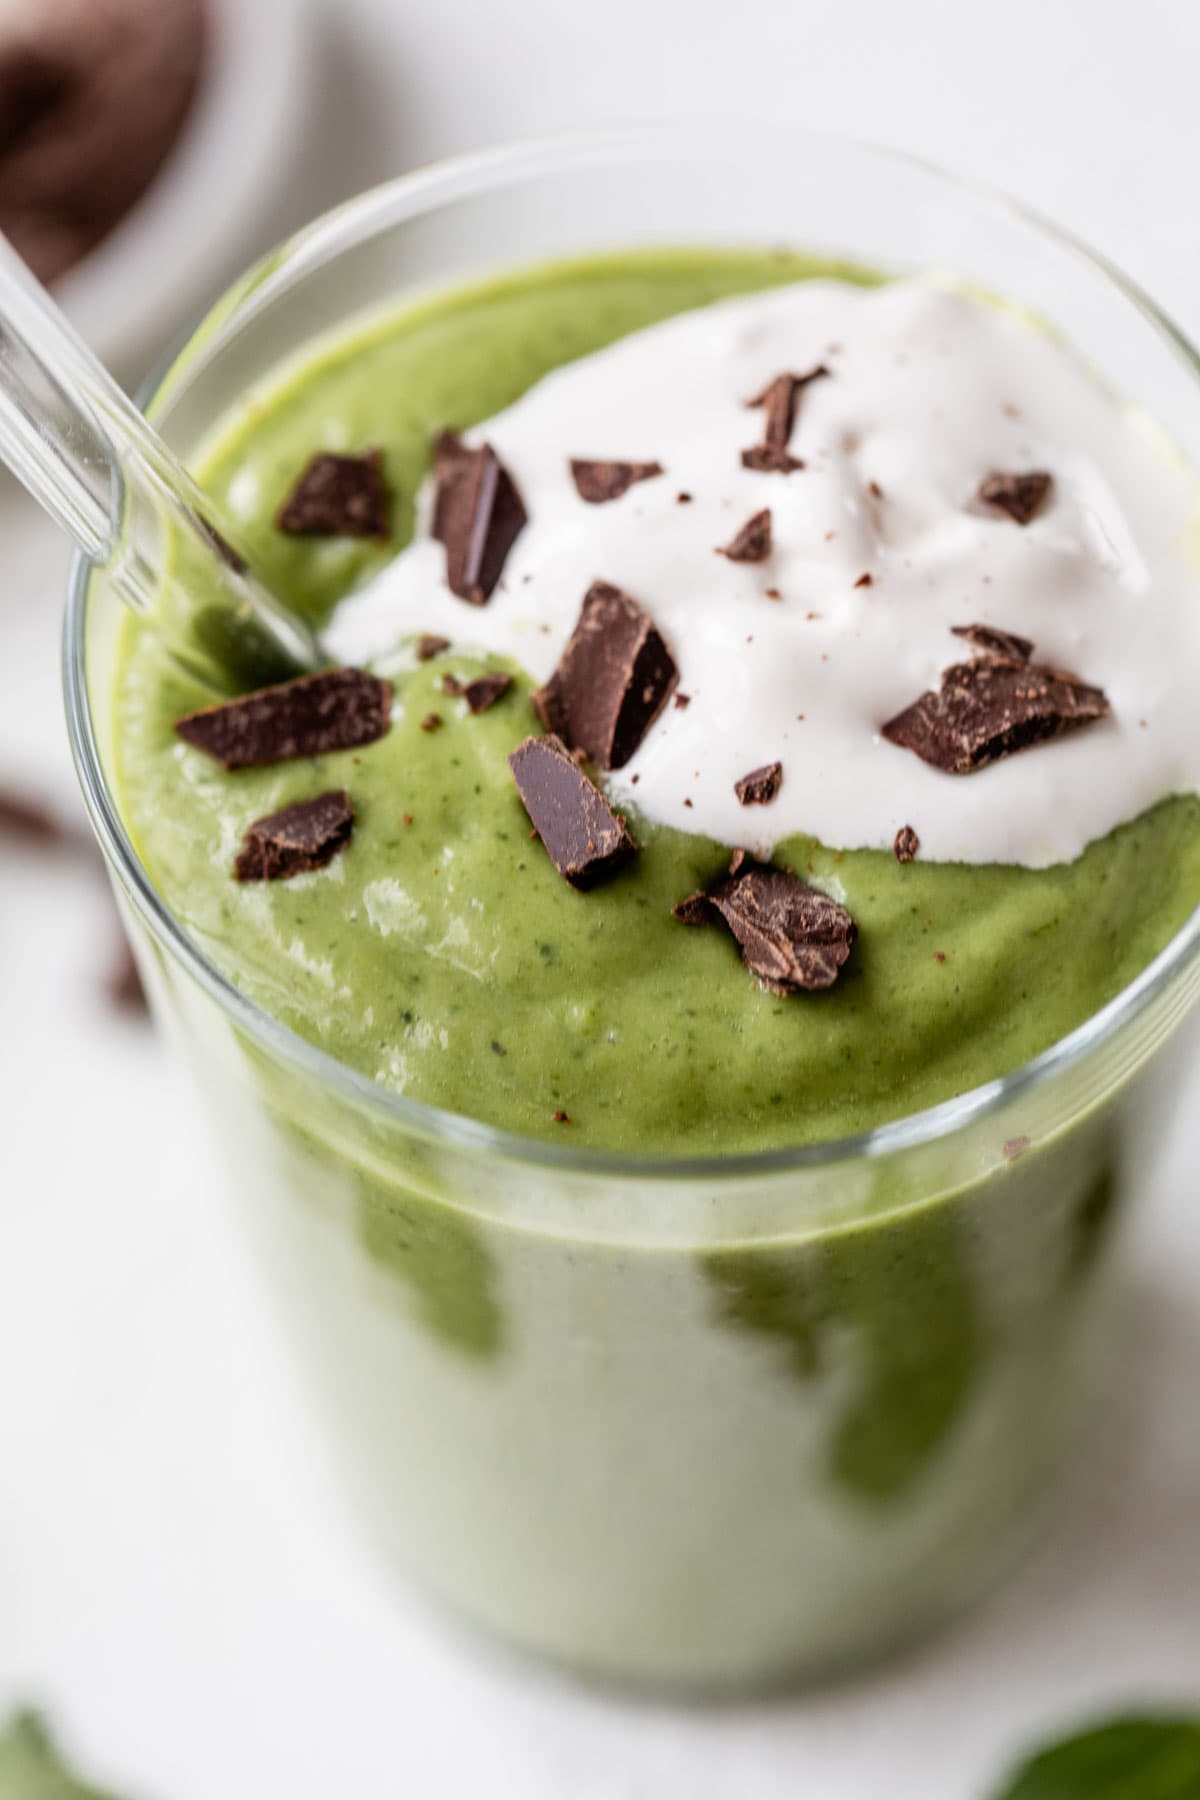 Skinny Shamrock Shakes made with frozen bananas, avocado, and fresh mint. Enjoy this healthy mint smoothie for dessert or after a work out! Vegan and gluten free